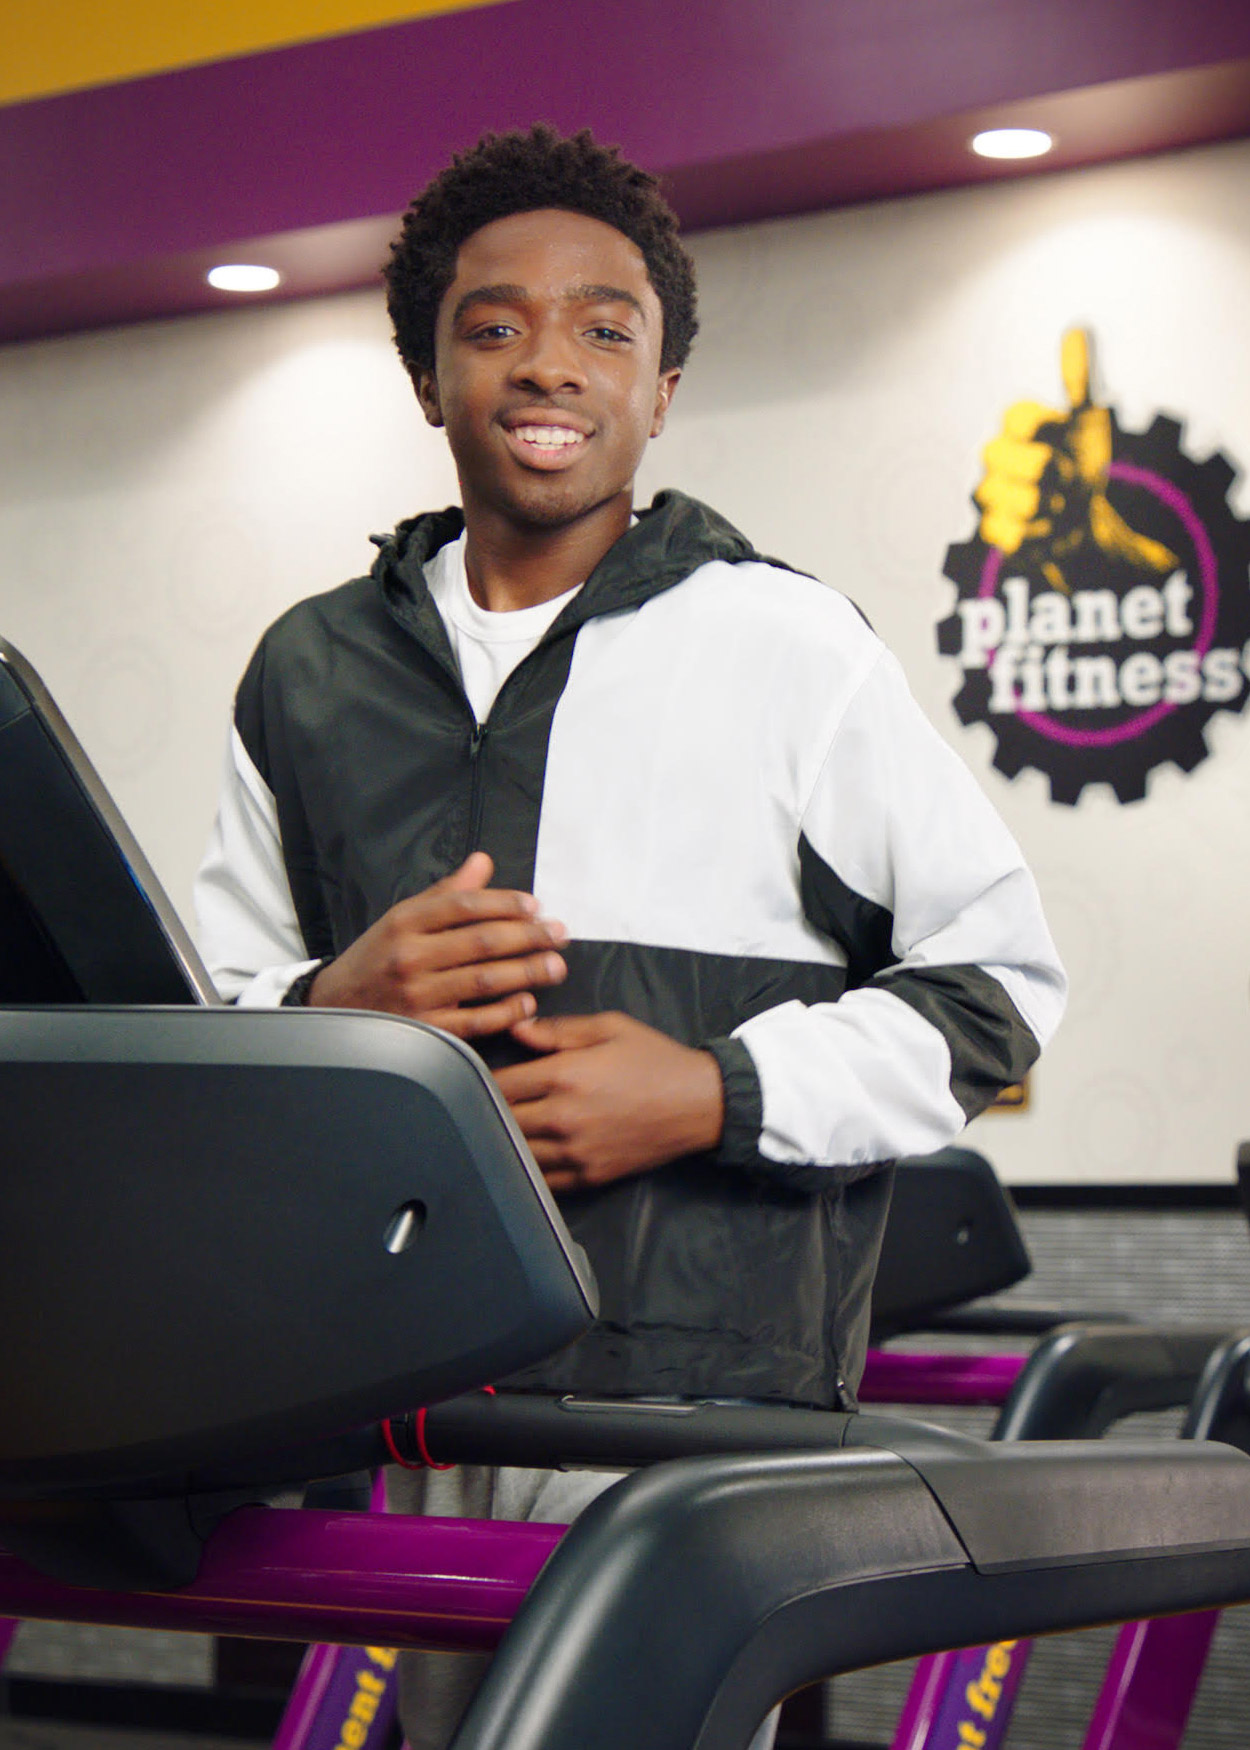 Caleb McLaughlin Planet Fitness